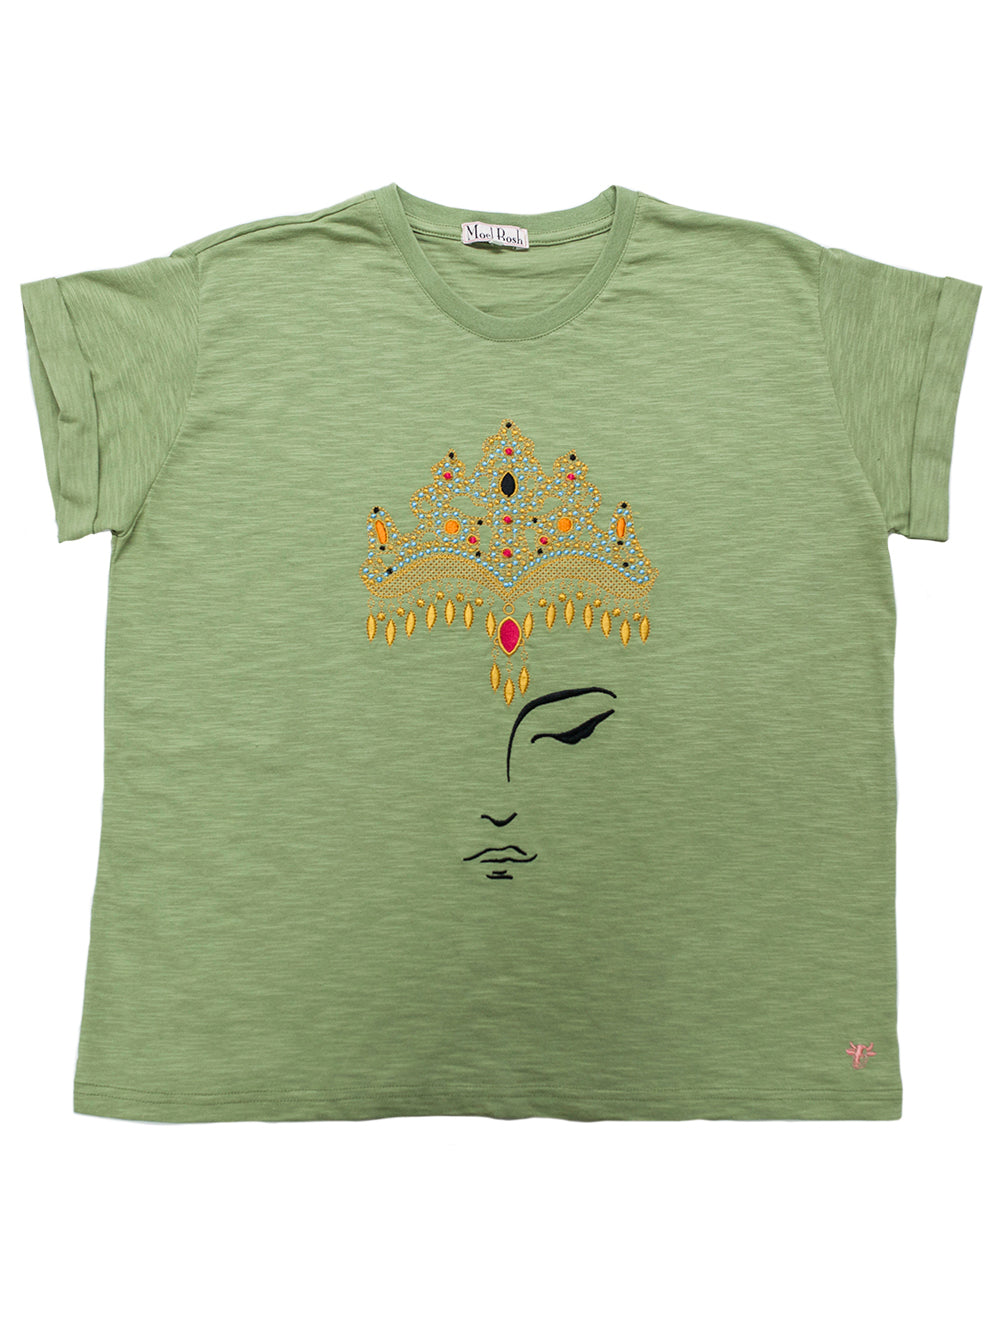 T-shirt with Crown Machine Embroidery